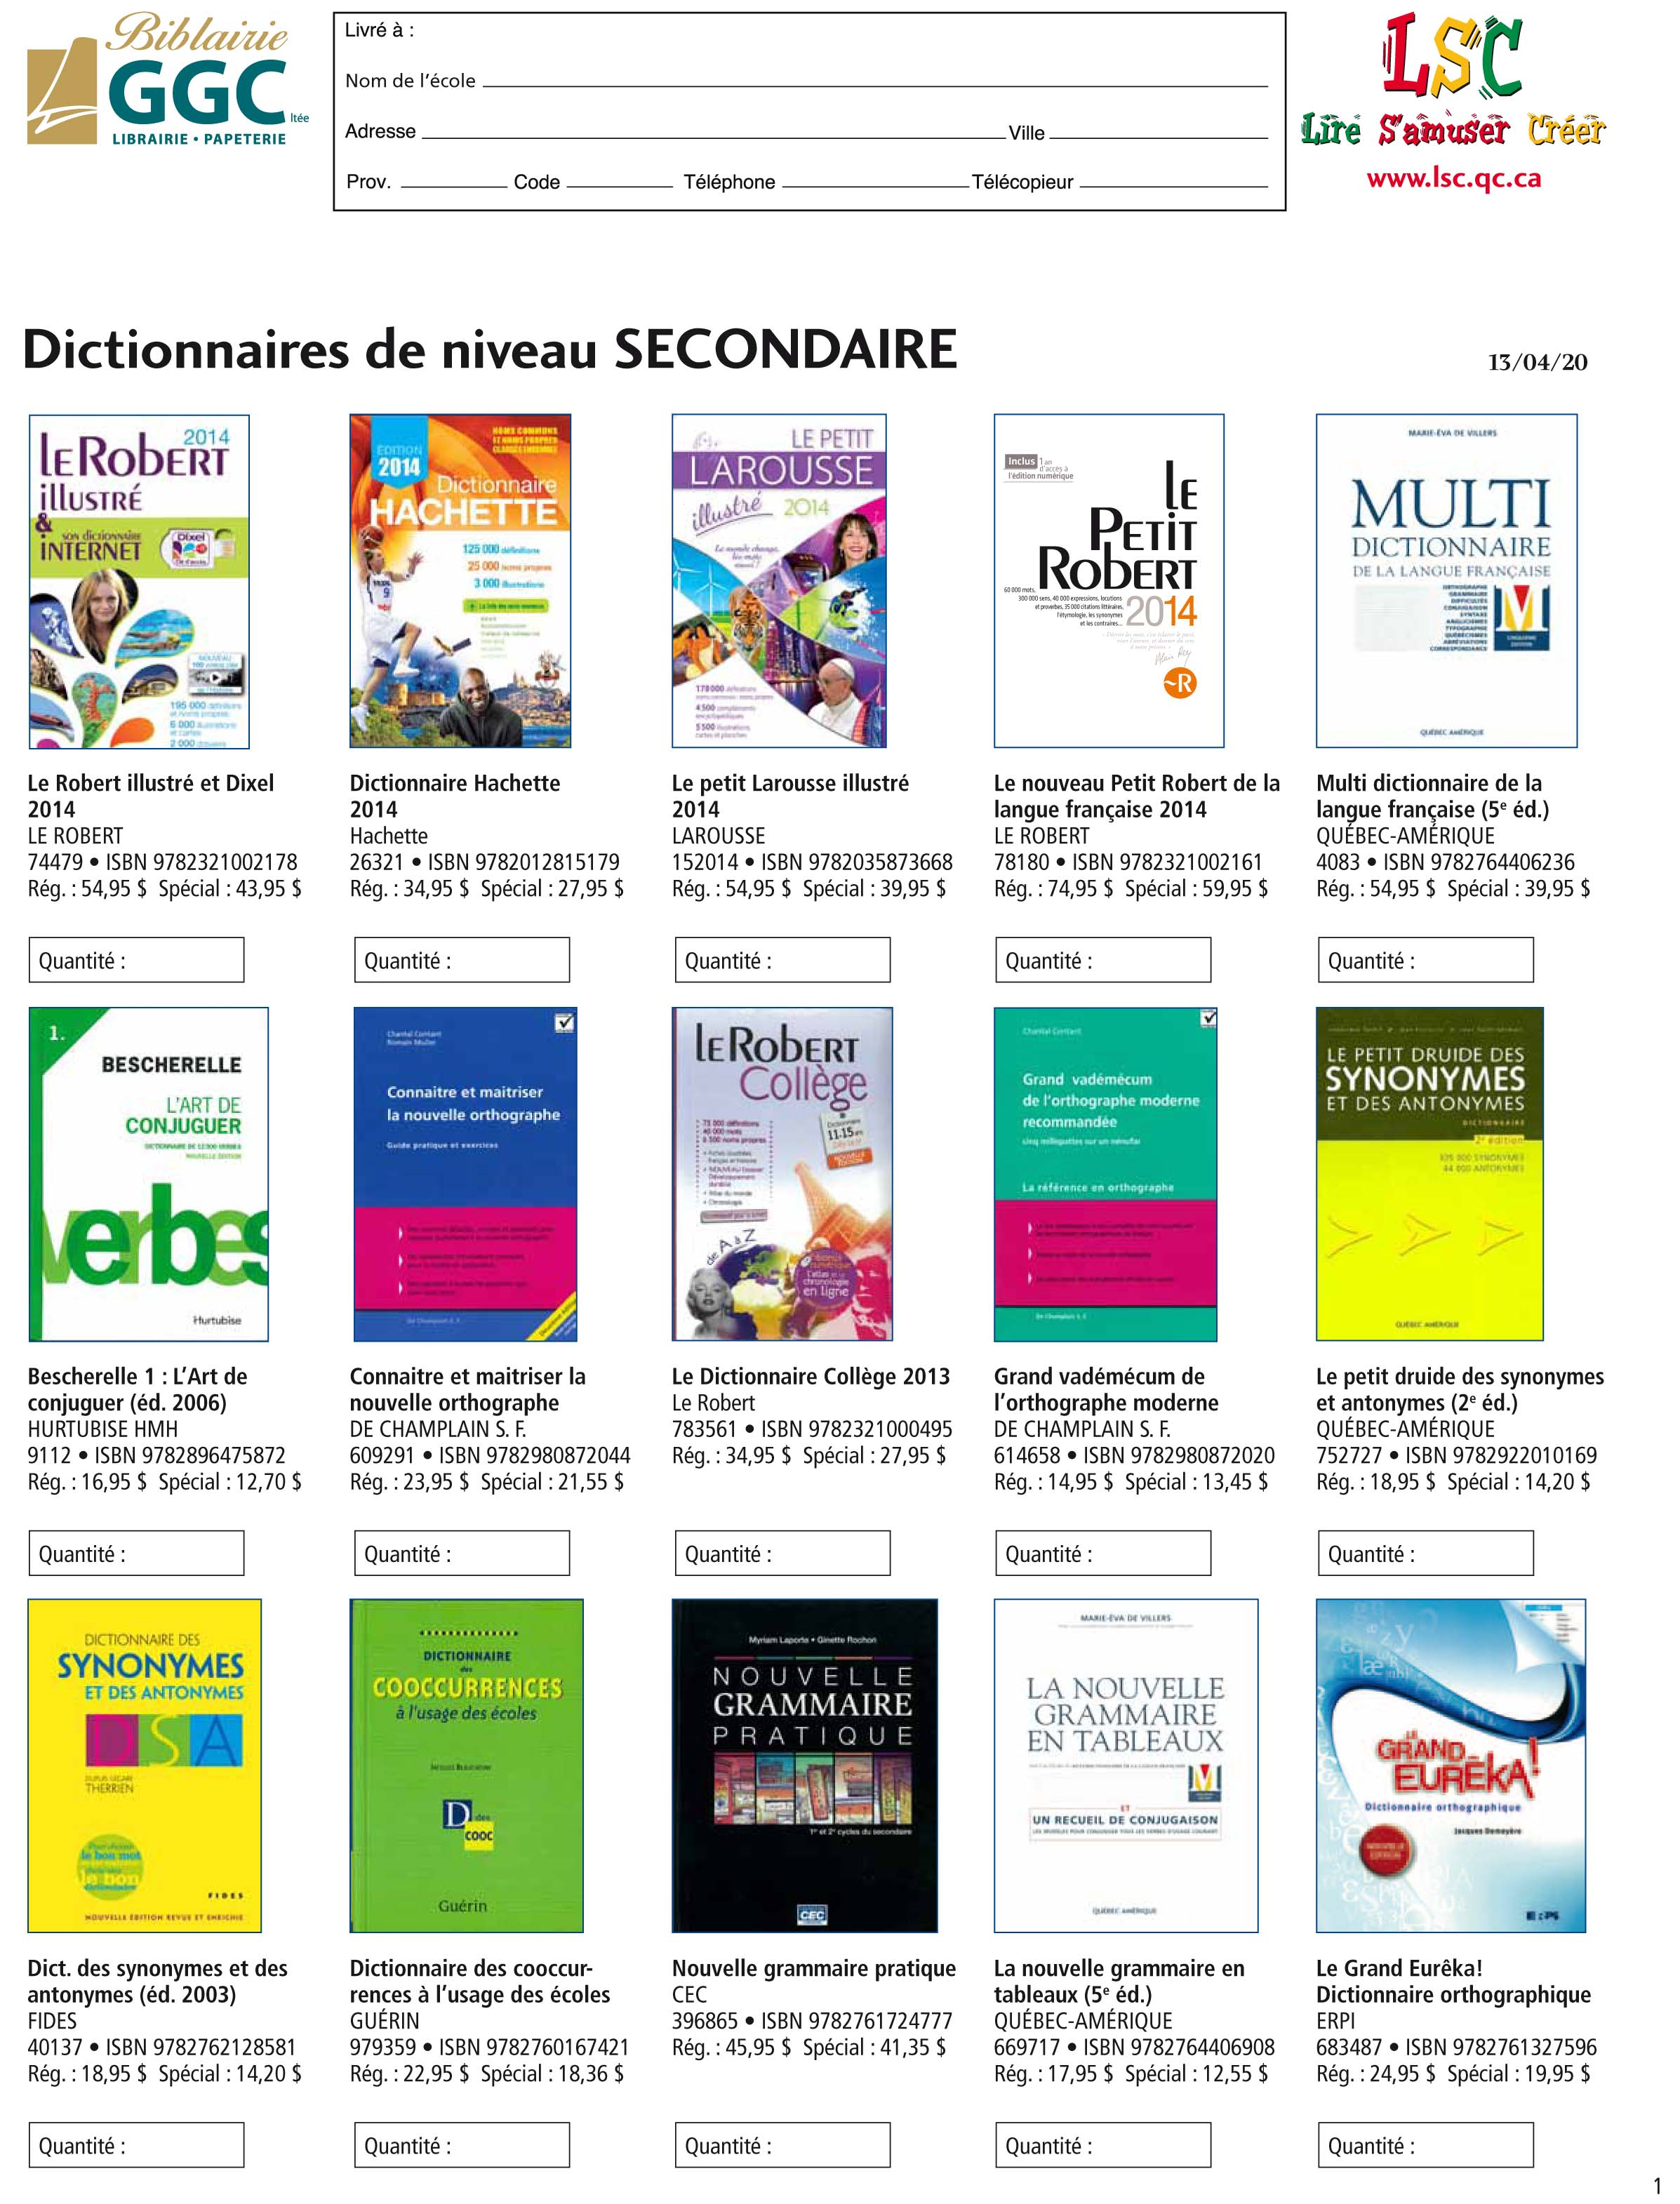 Dictionnaire secondaire